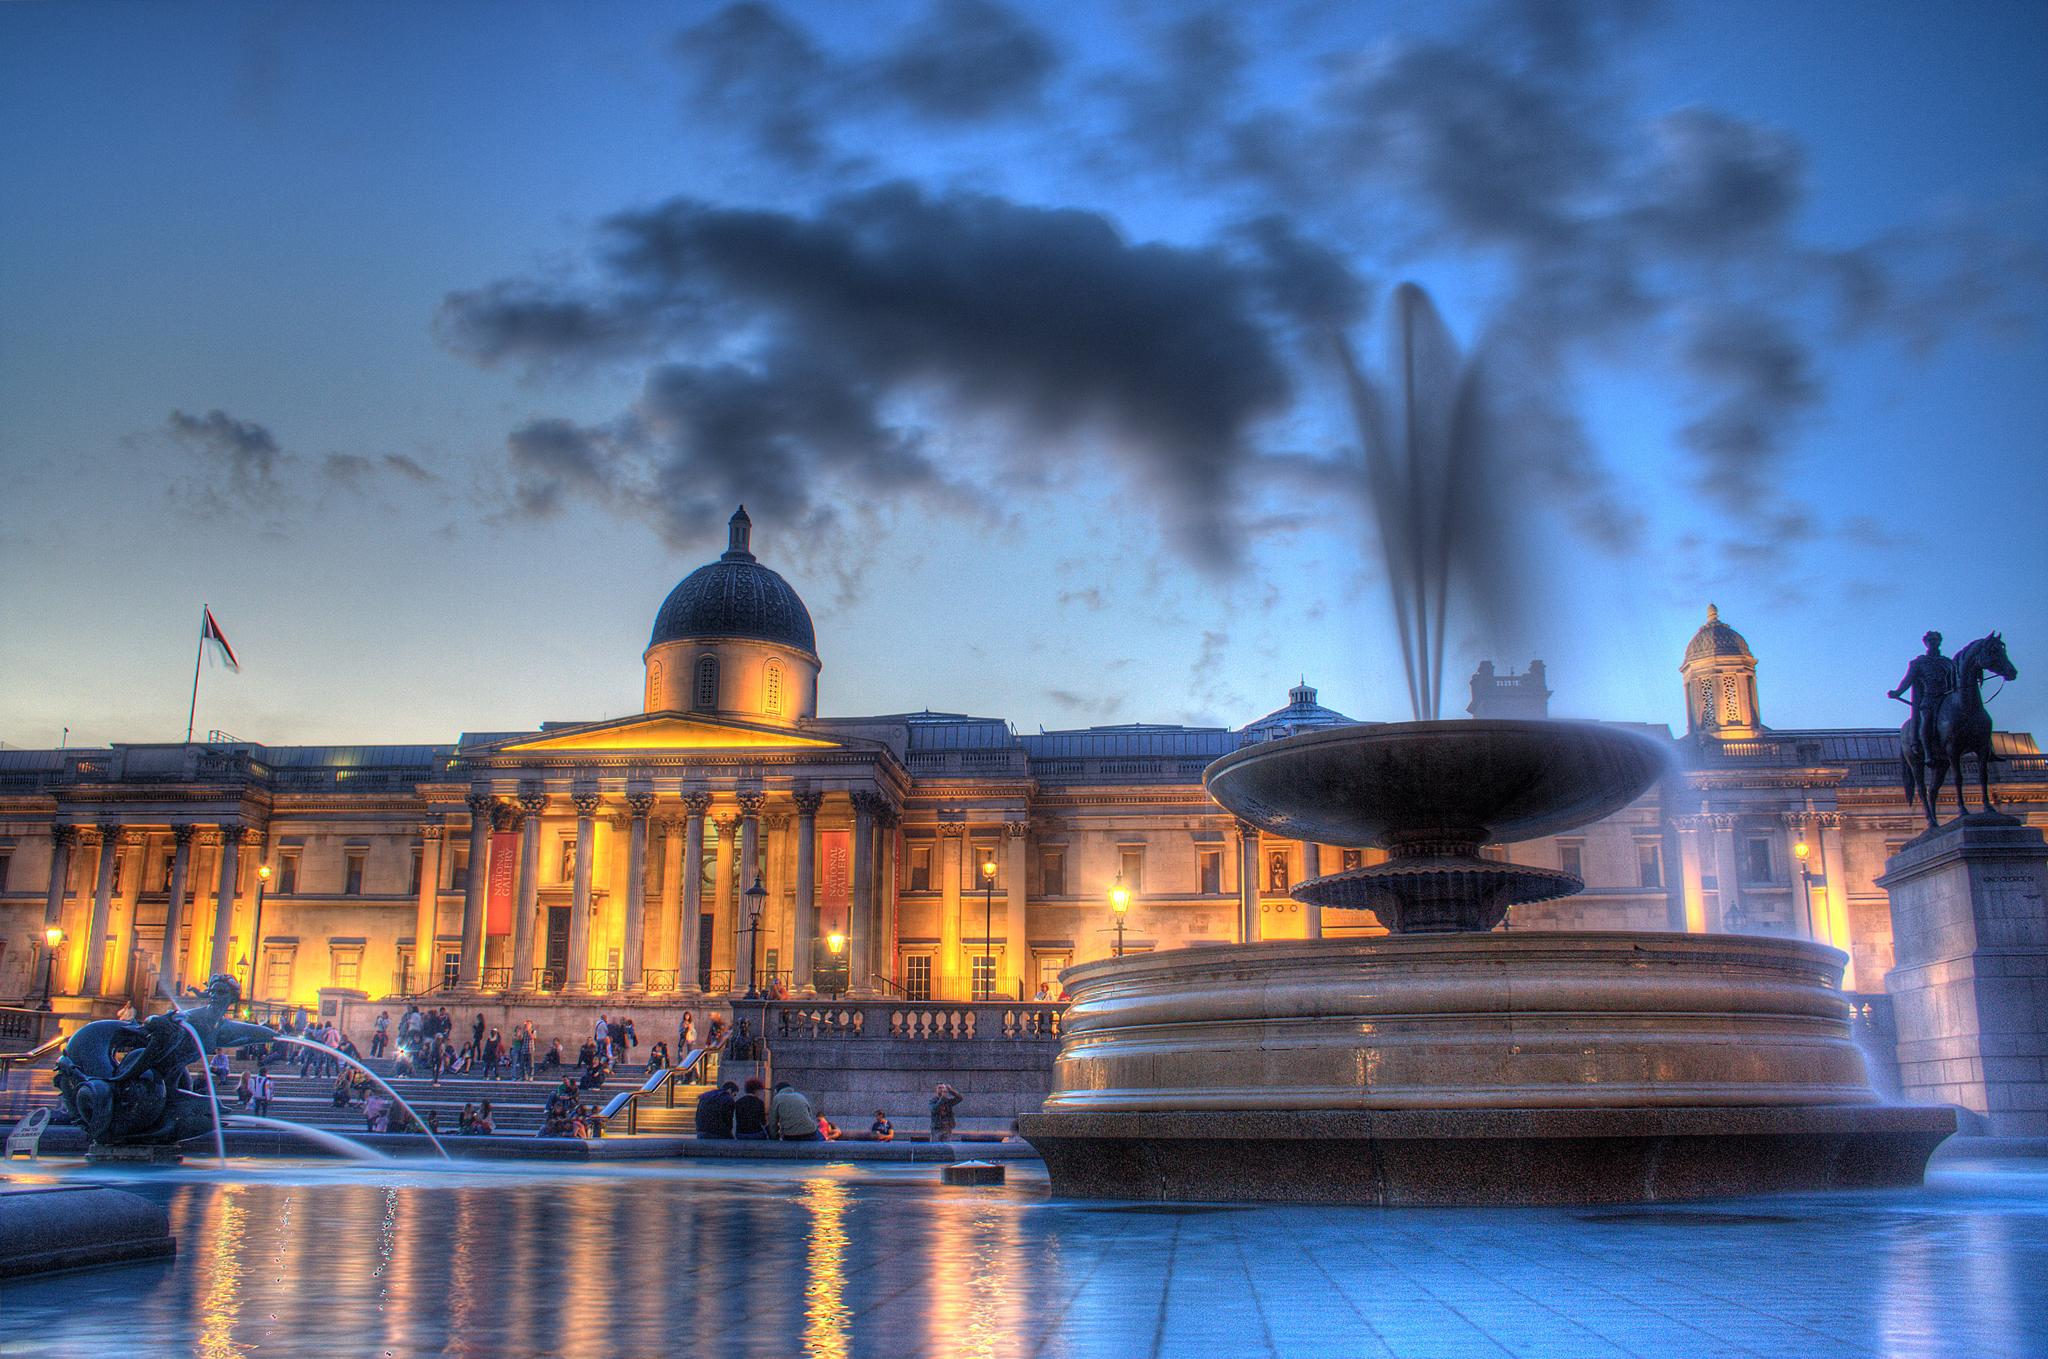 """The National Gallery in London Photo by <a href=""""https://www.flickr.com/photos/mauricedb/2742966709/""""> Maurice </a>"""